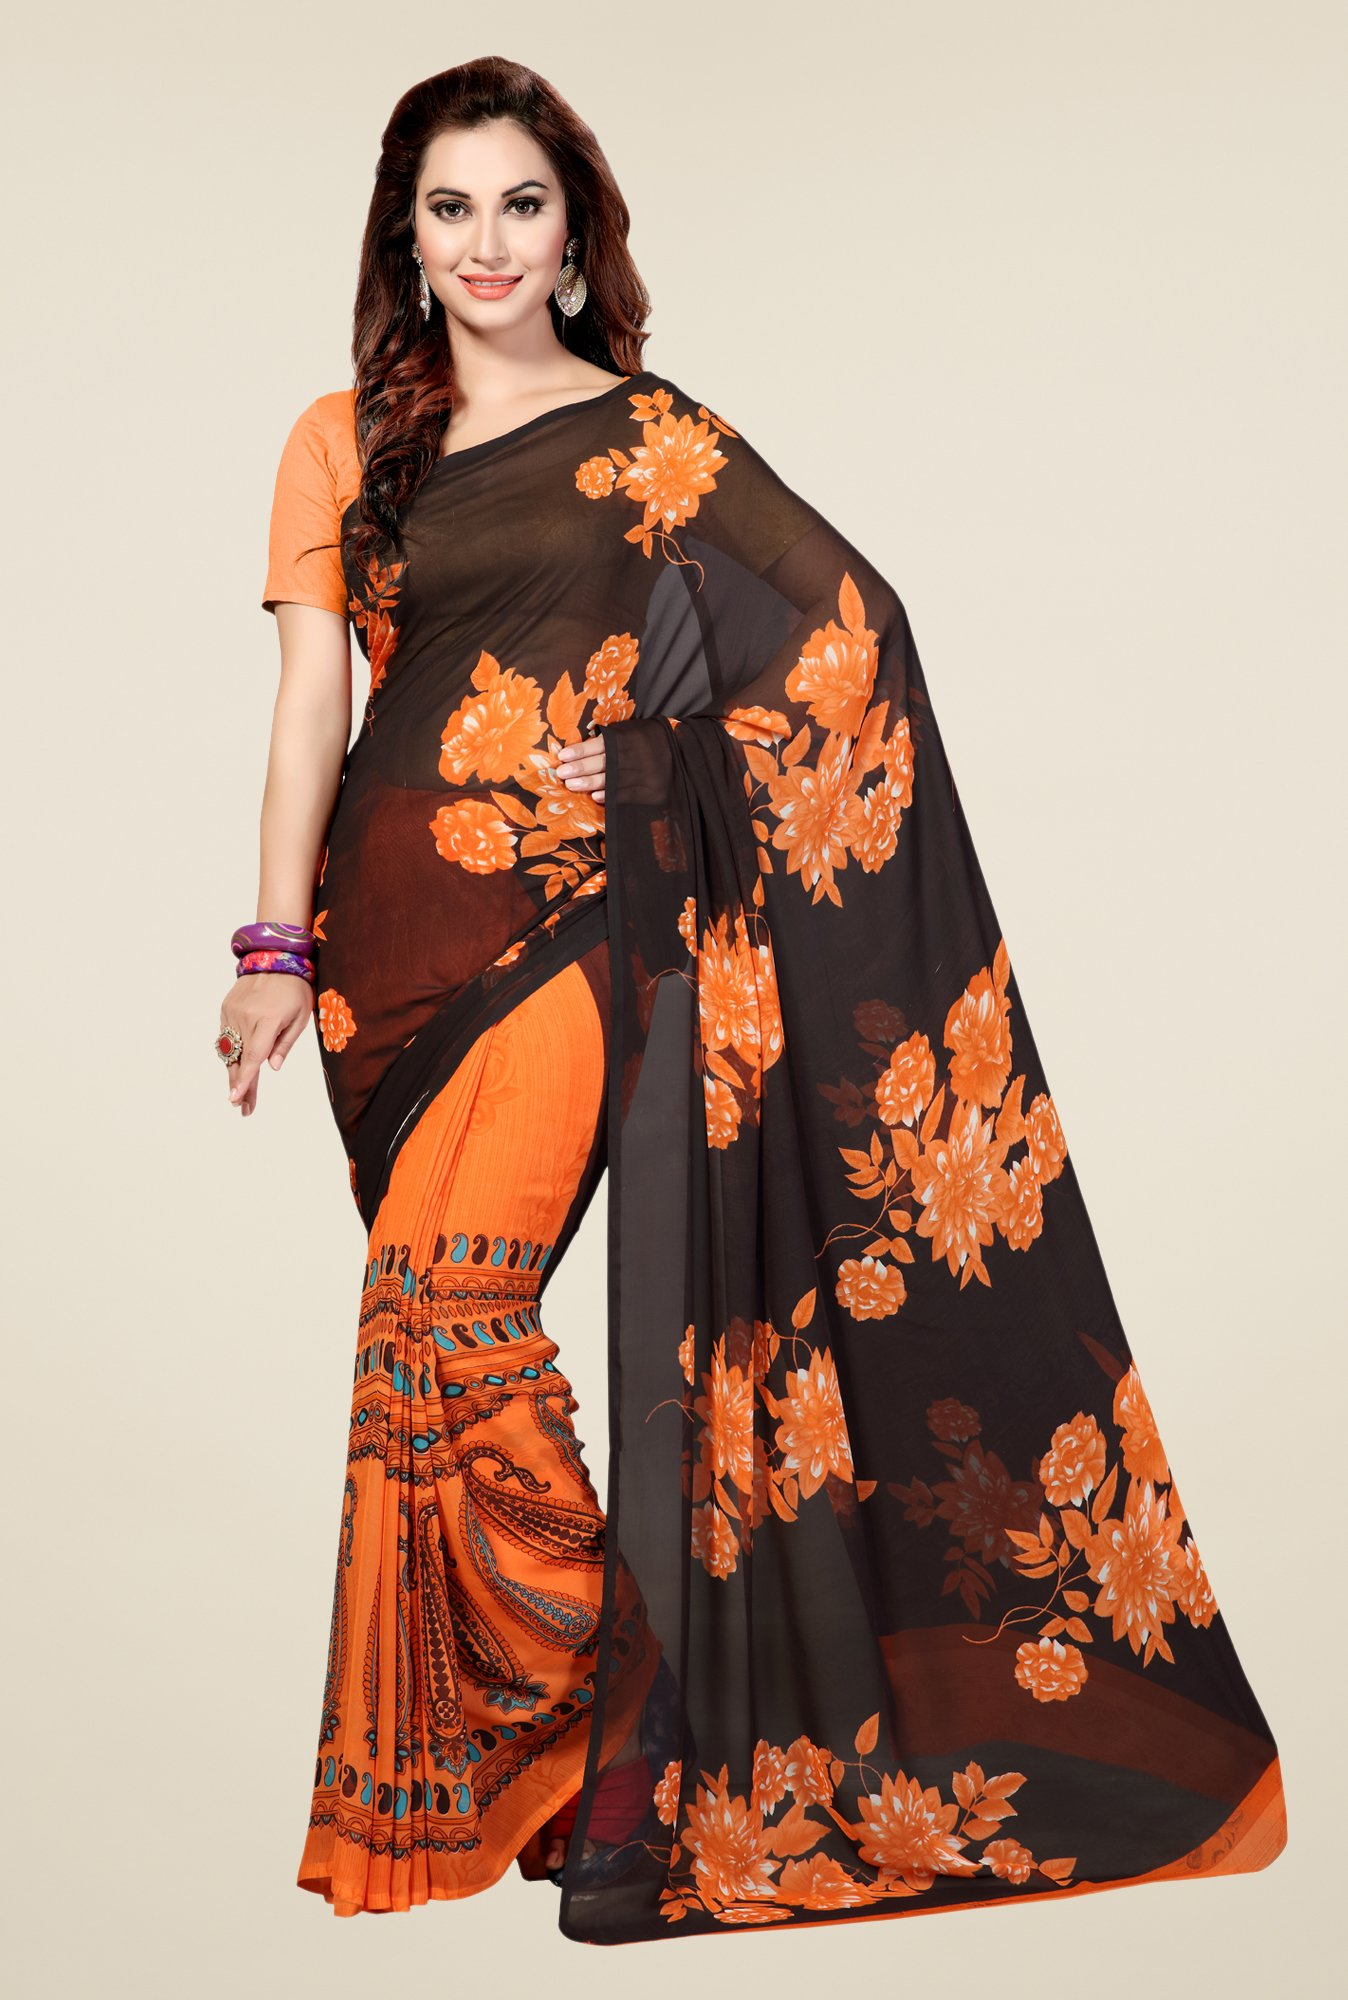 Ishin Orange & Black Faux Georgette Floral Print Saree